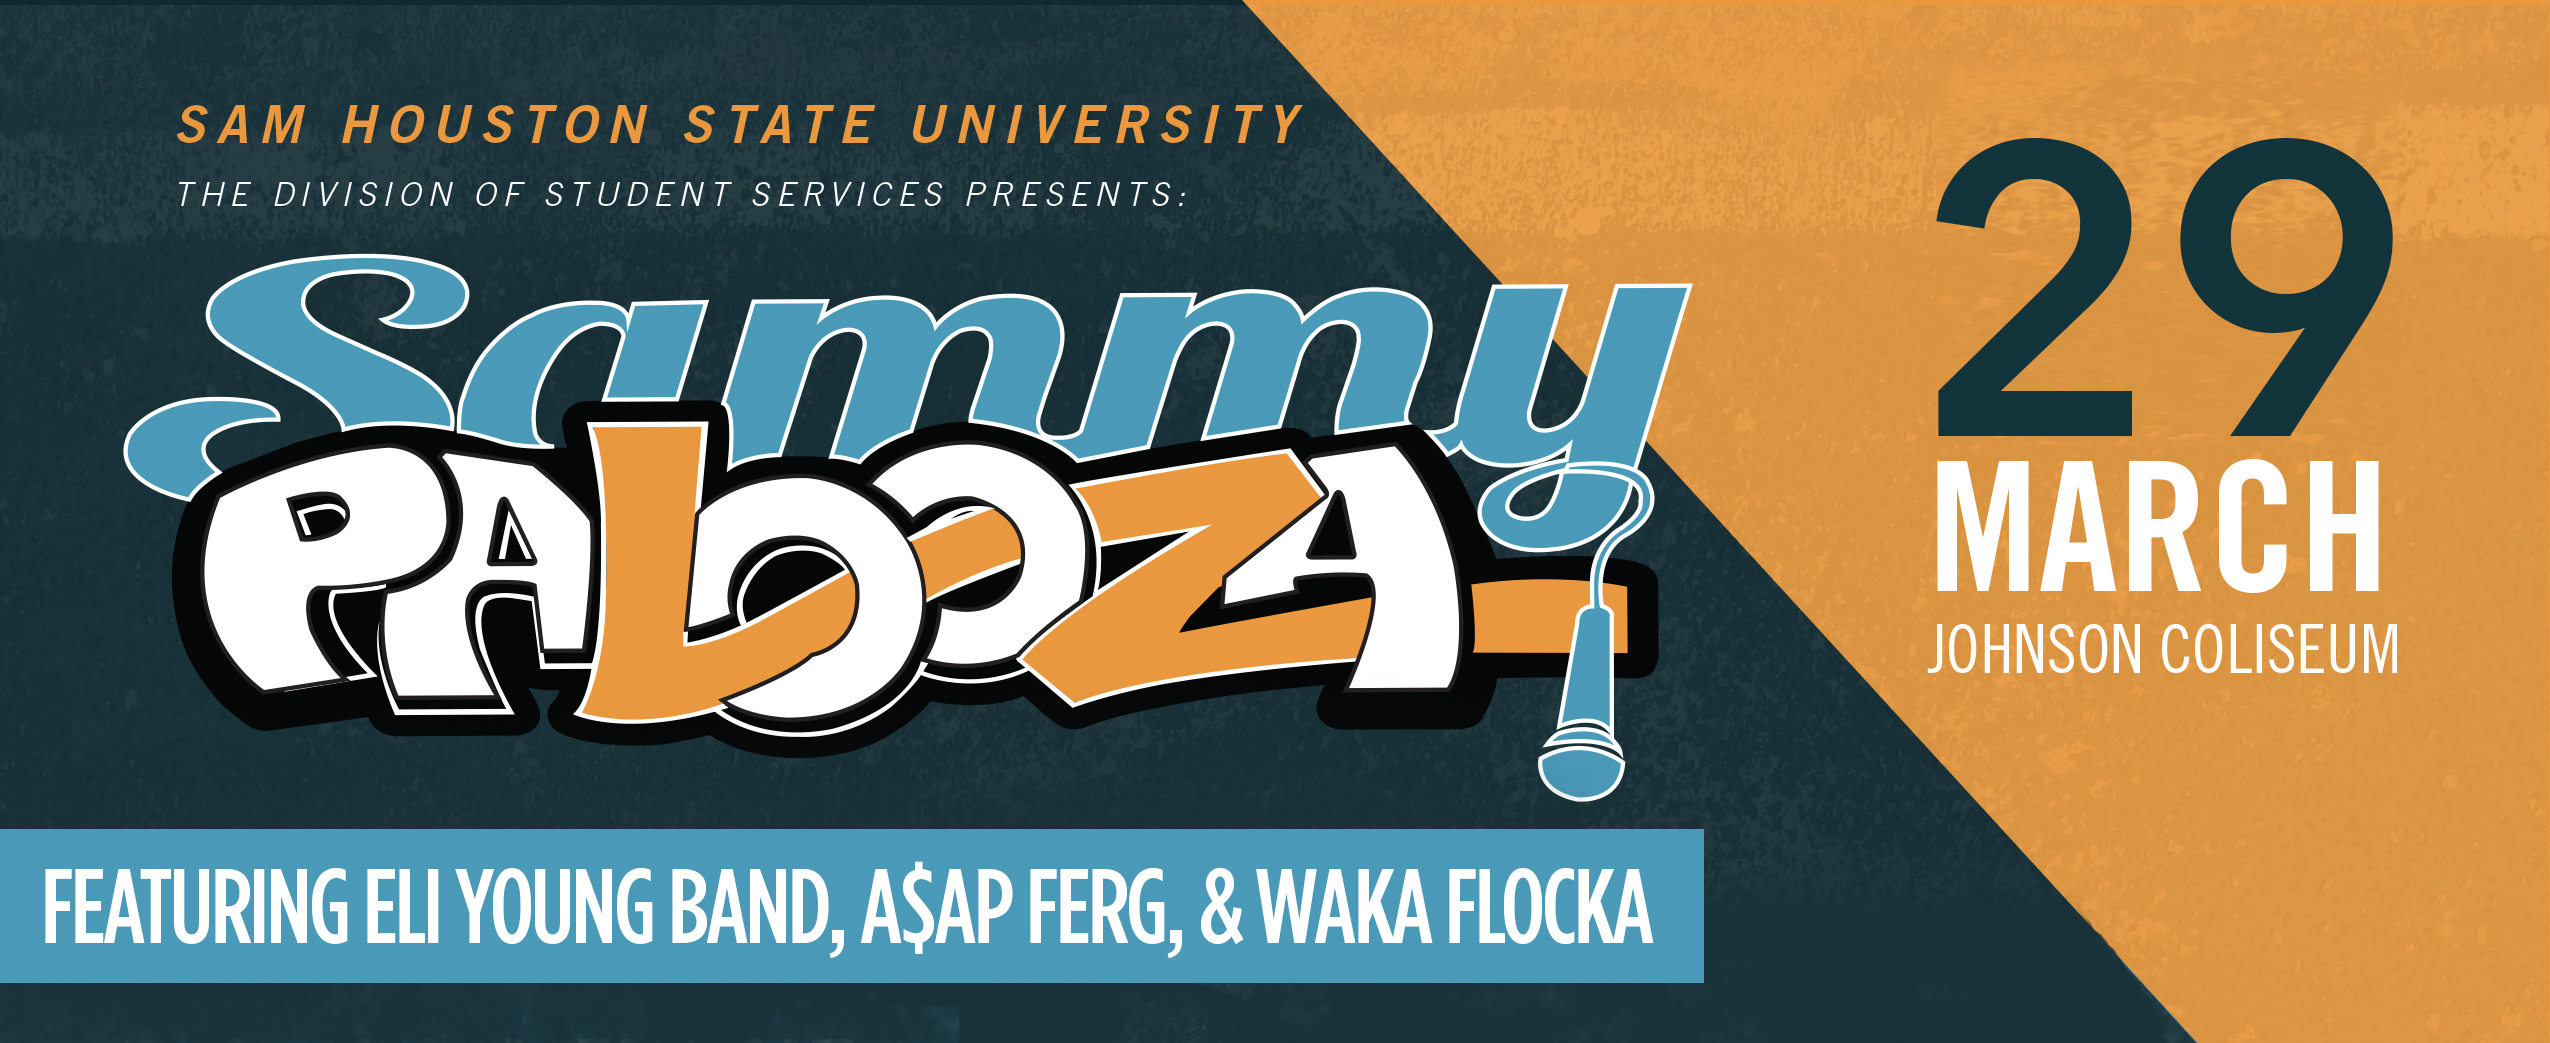 Sammypalooza 2017 featuring The Eli Young Band, A$AP Ferg, and Waka Flocka on March 29